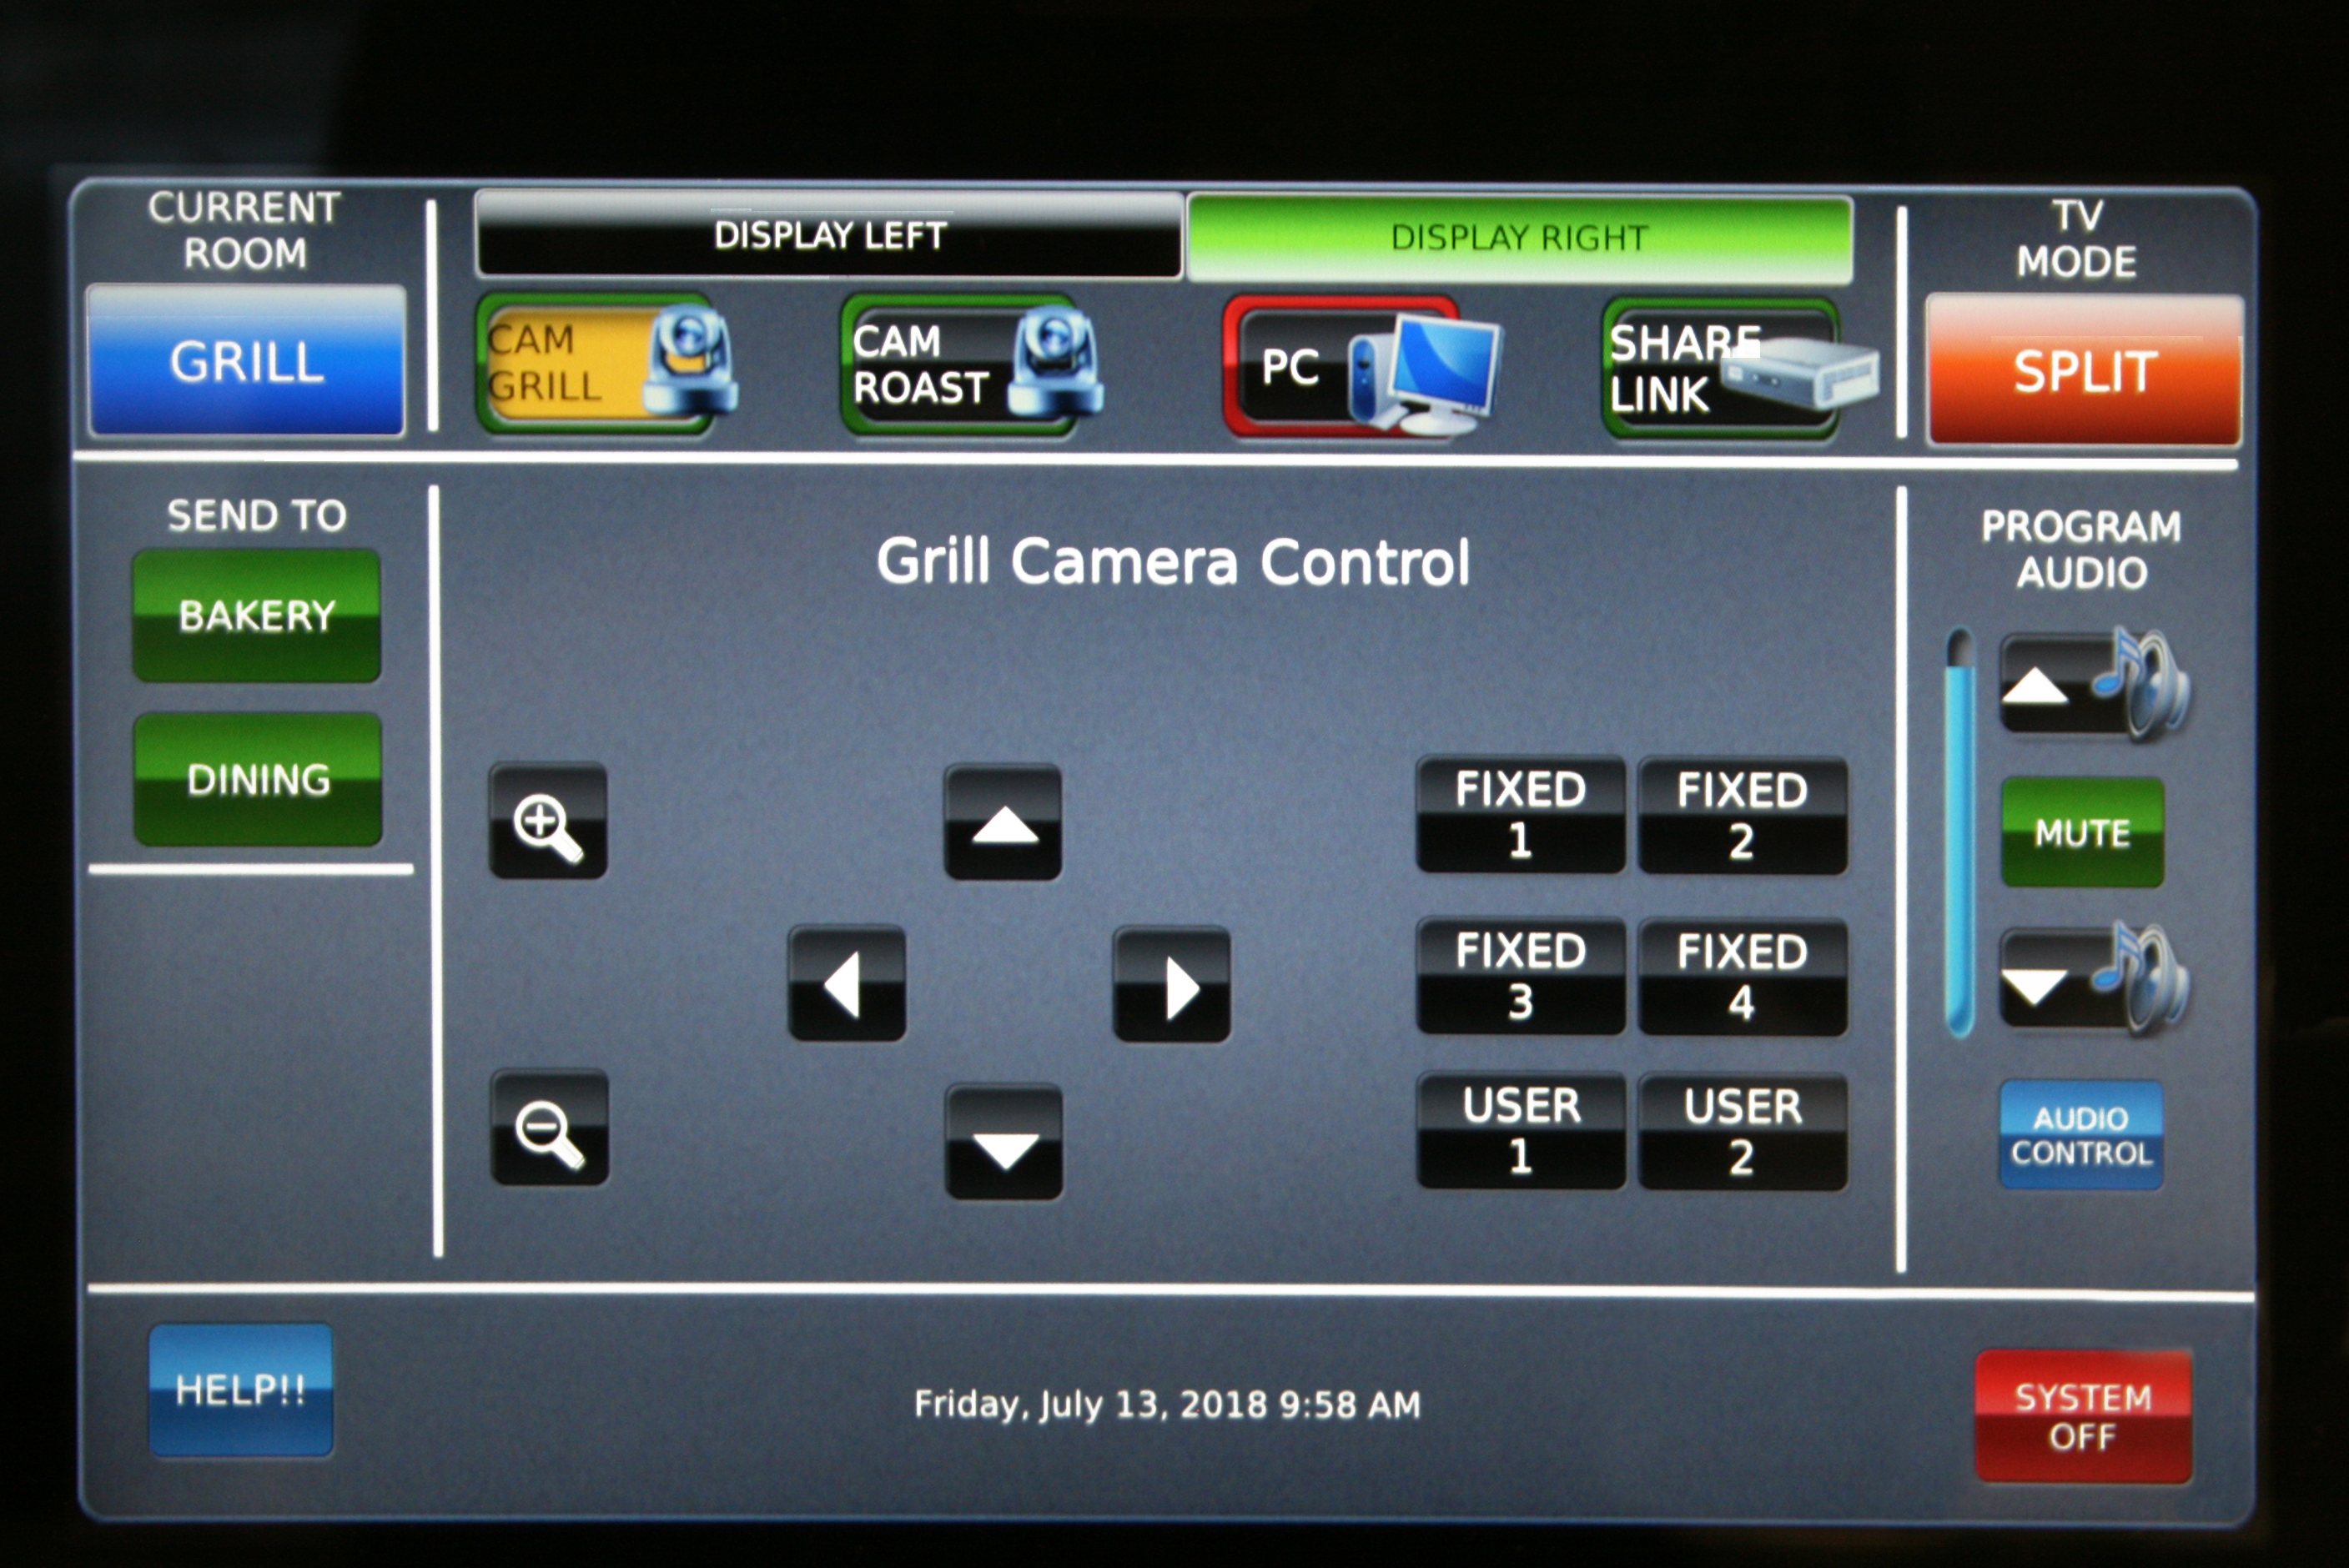 The full-motion video touchscreen on the TouchLink Pro touchpanel allows the instructor to easily preview and select the best camera angle when preparing to demonstrate a cooking technique.